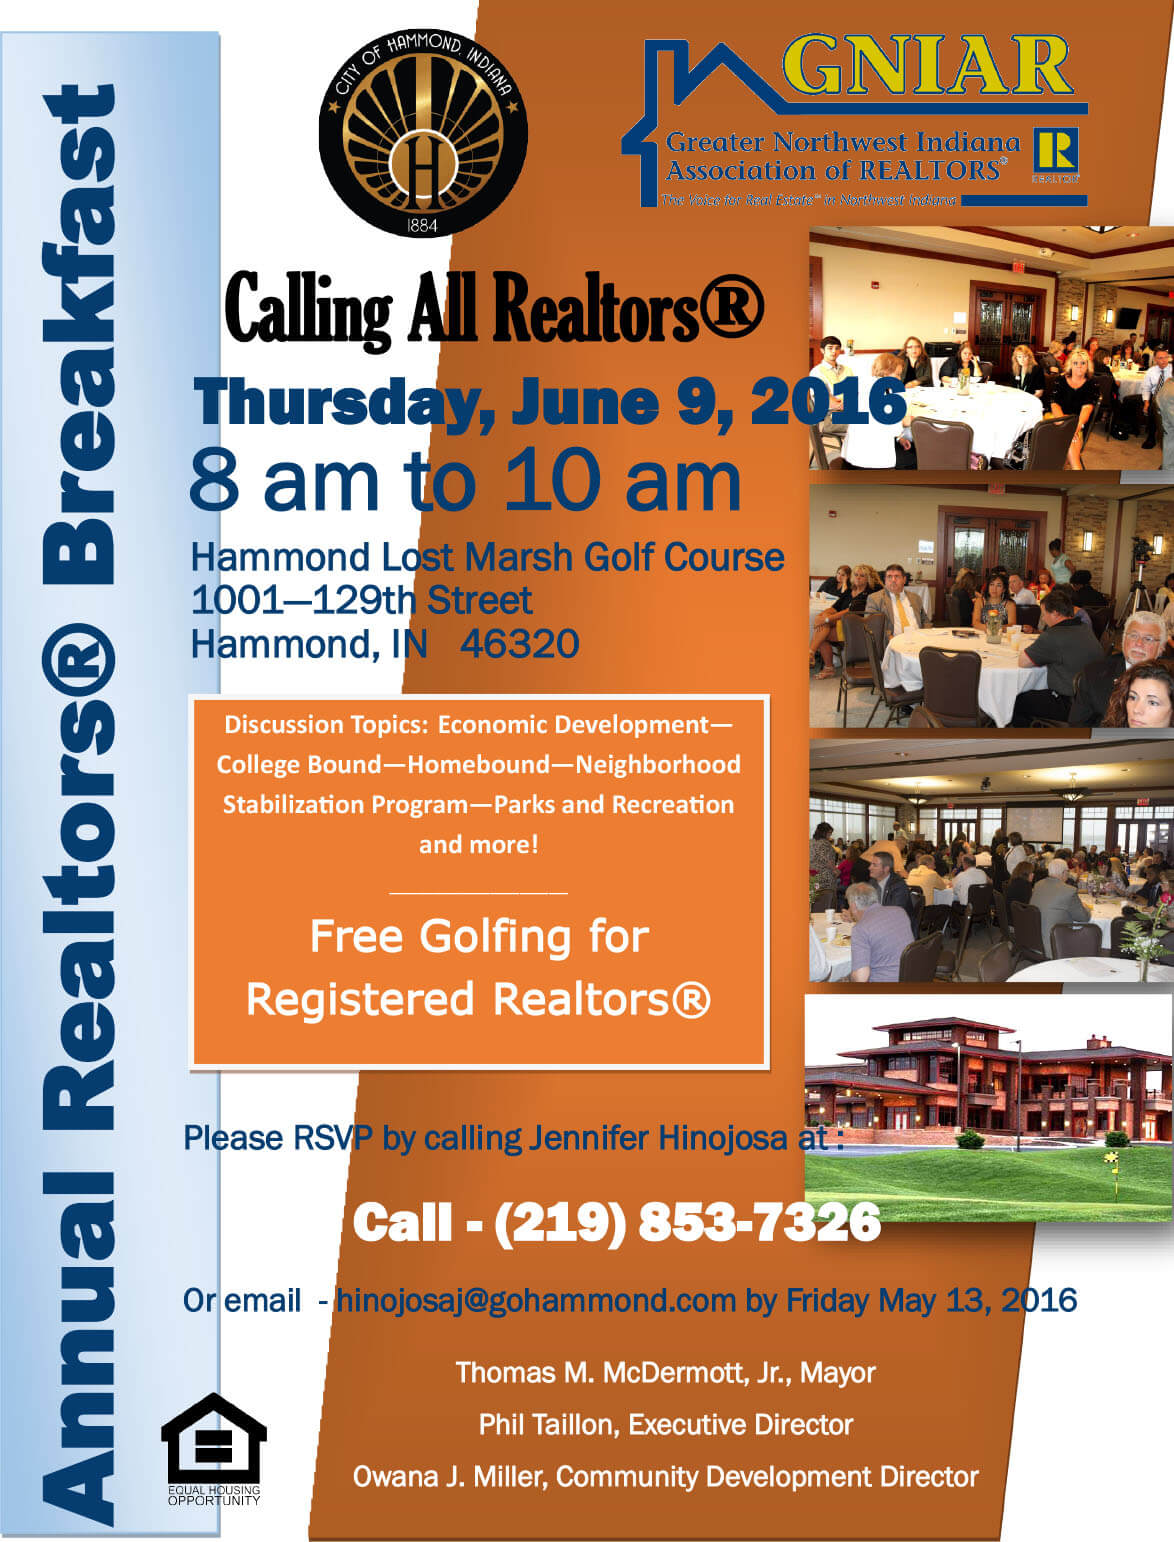 and the City of Hammond invite all Realtors to join us for the Annual Realtors Breakfast